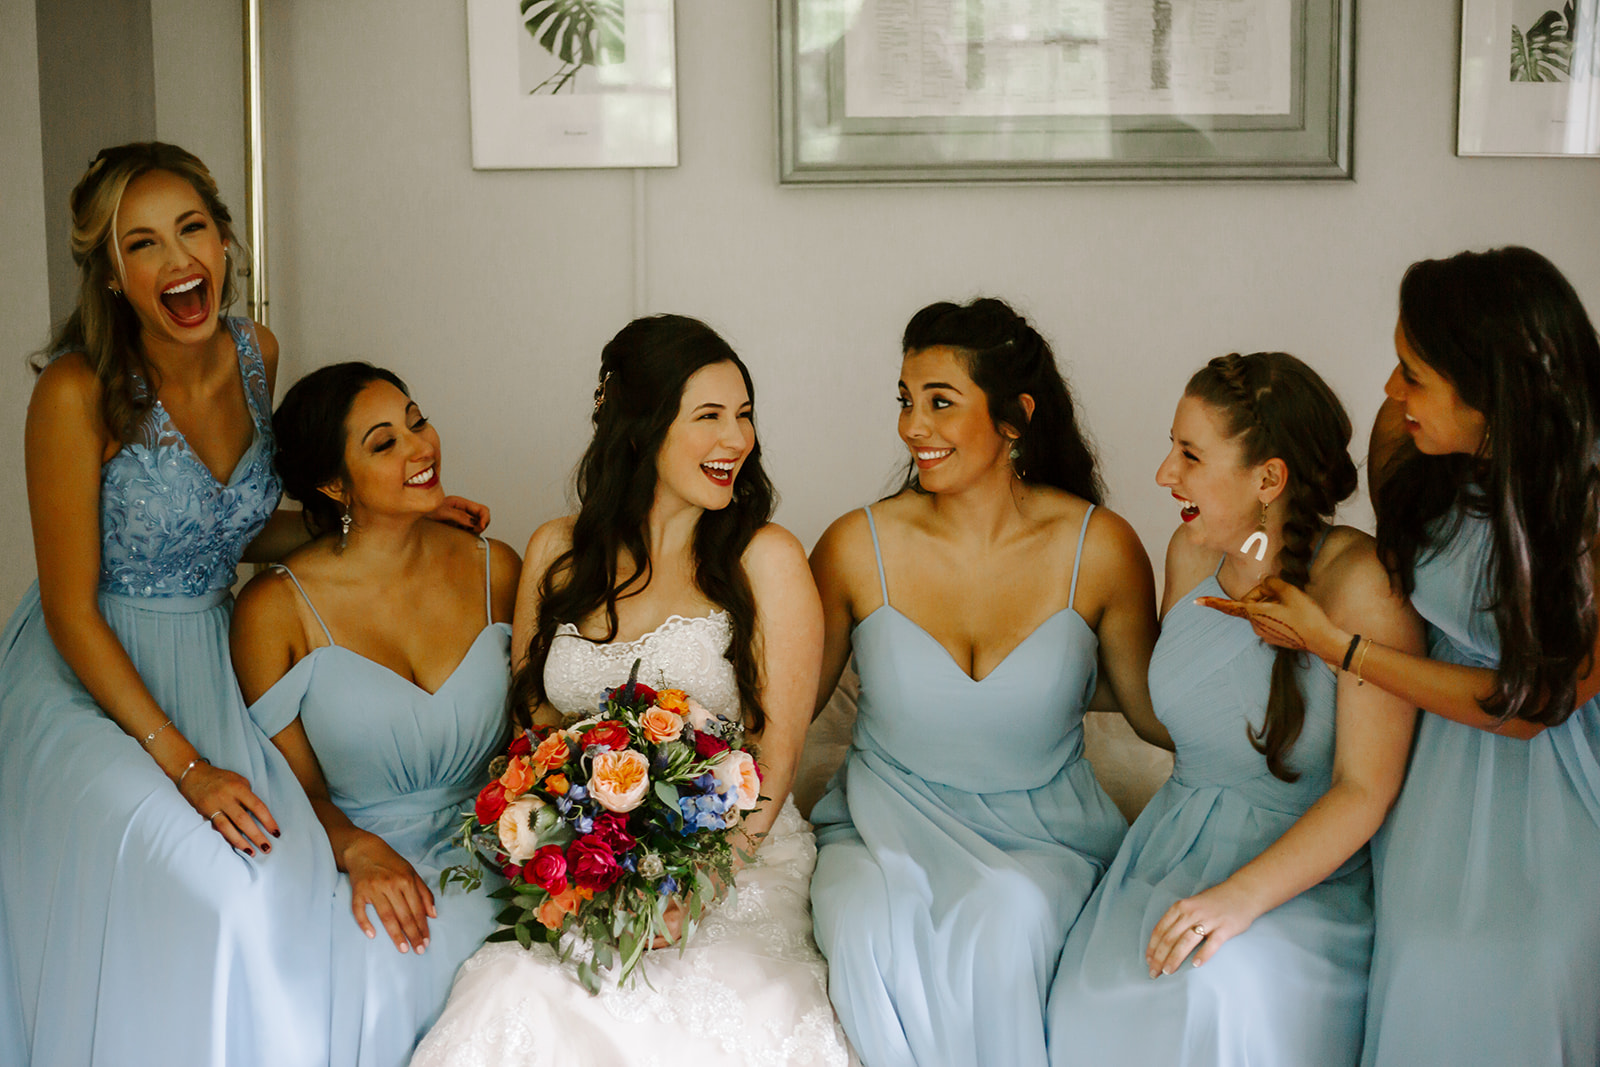 My bridesmaids and I getting ready before the ceremony